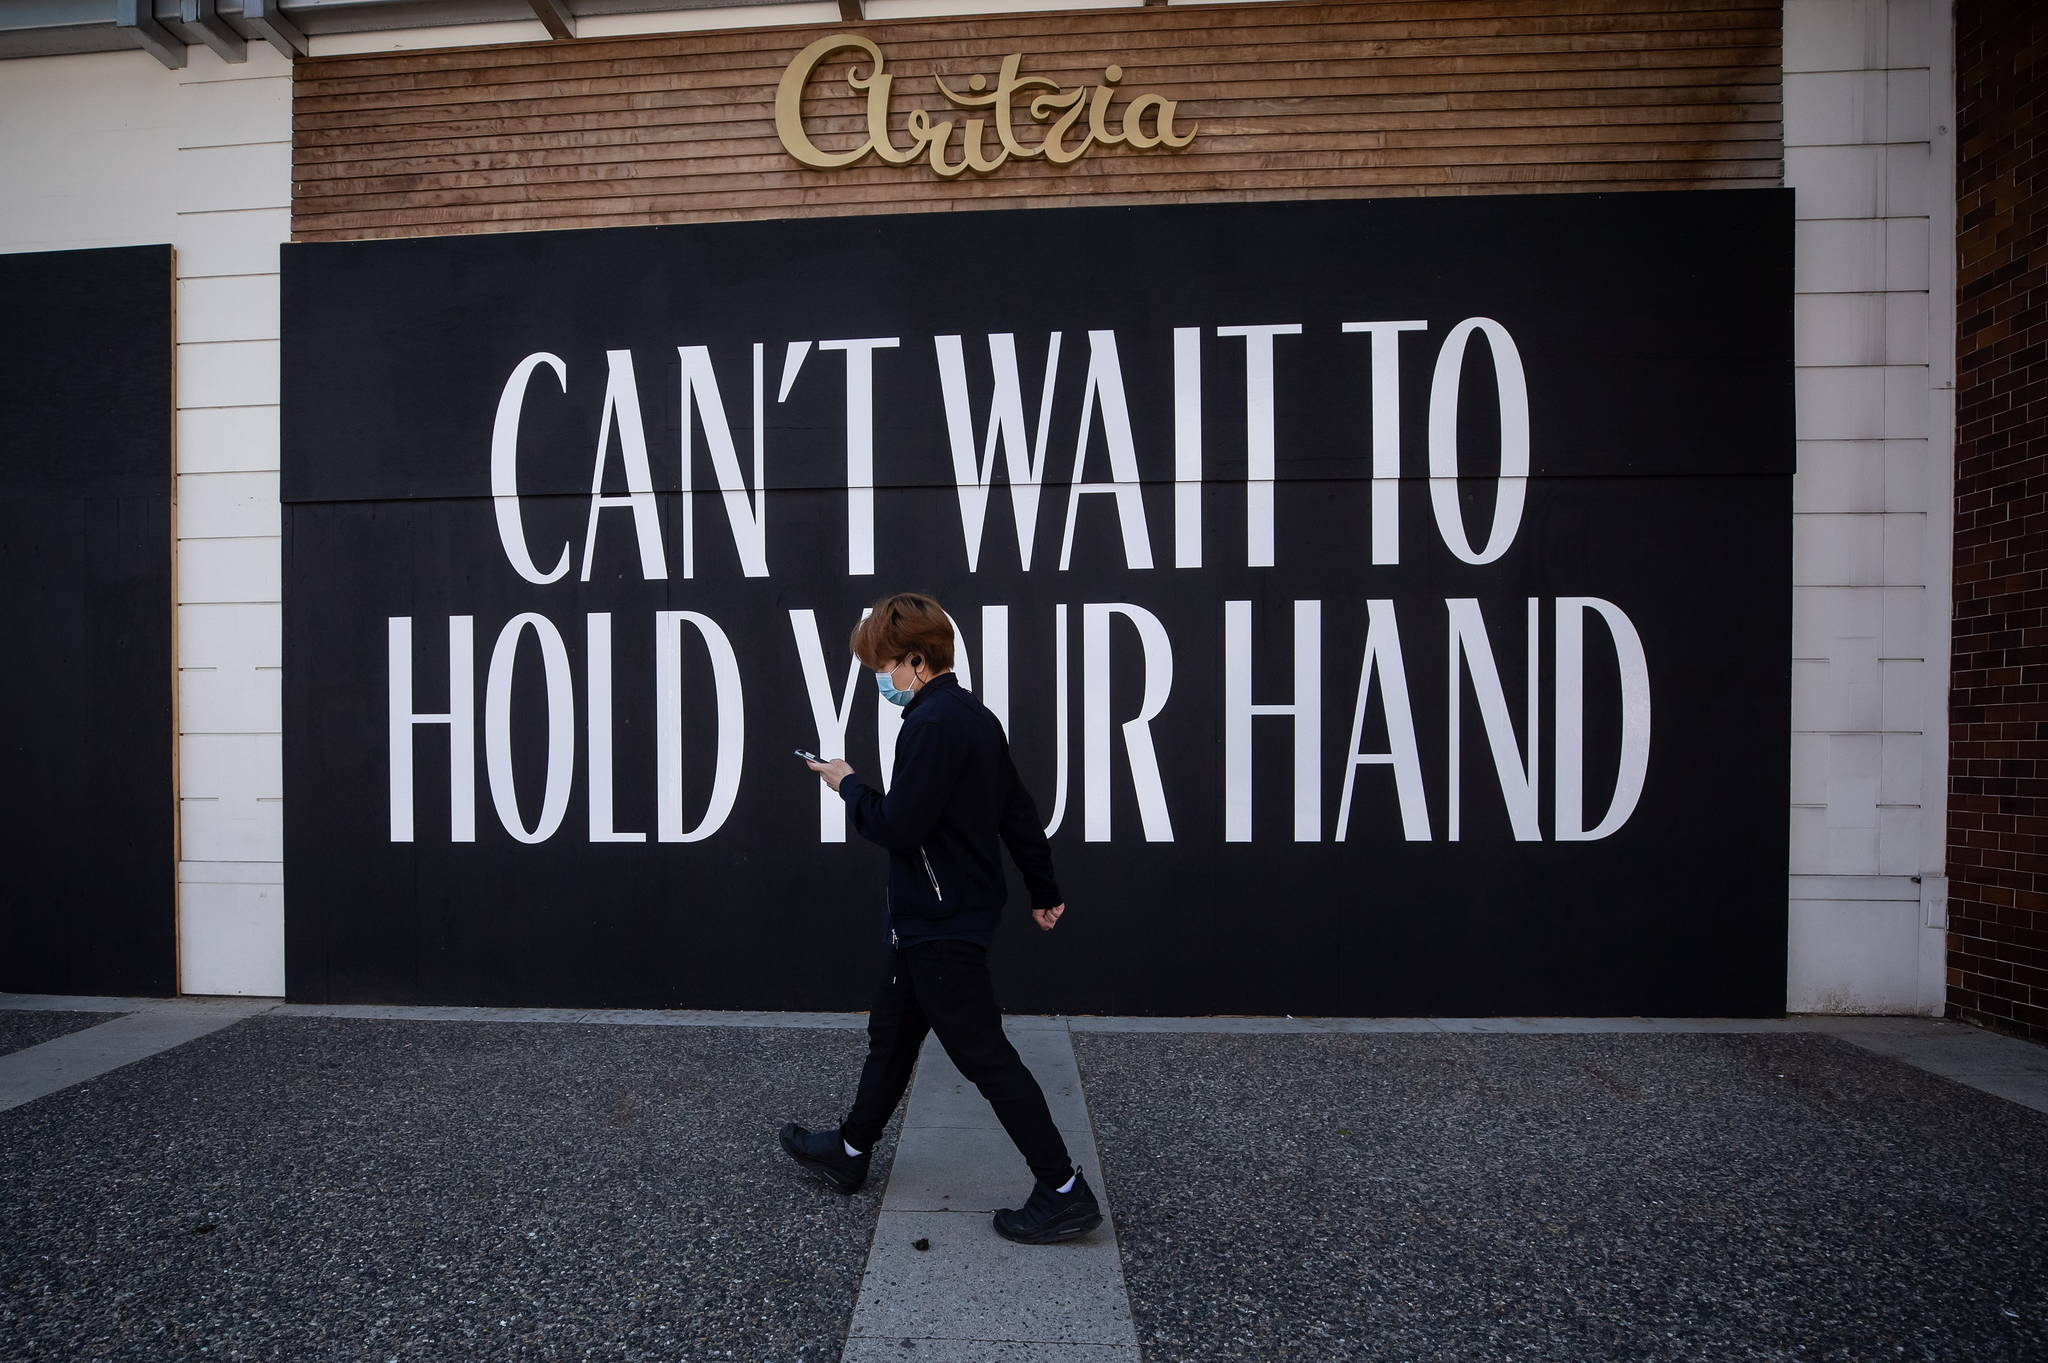 A message is painted on the boarded up windows of a closed Aritzia clothing store on Robson Street, in Vancouver, on Wednesday, May 6, 2020. Aritzia Inc. says it expects net revenue for its first quarter to be about 45 per cent lower than at the same time last year due to the impacts of COVID-19. THE CANADIAN PRESS/Darryl Dyck